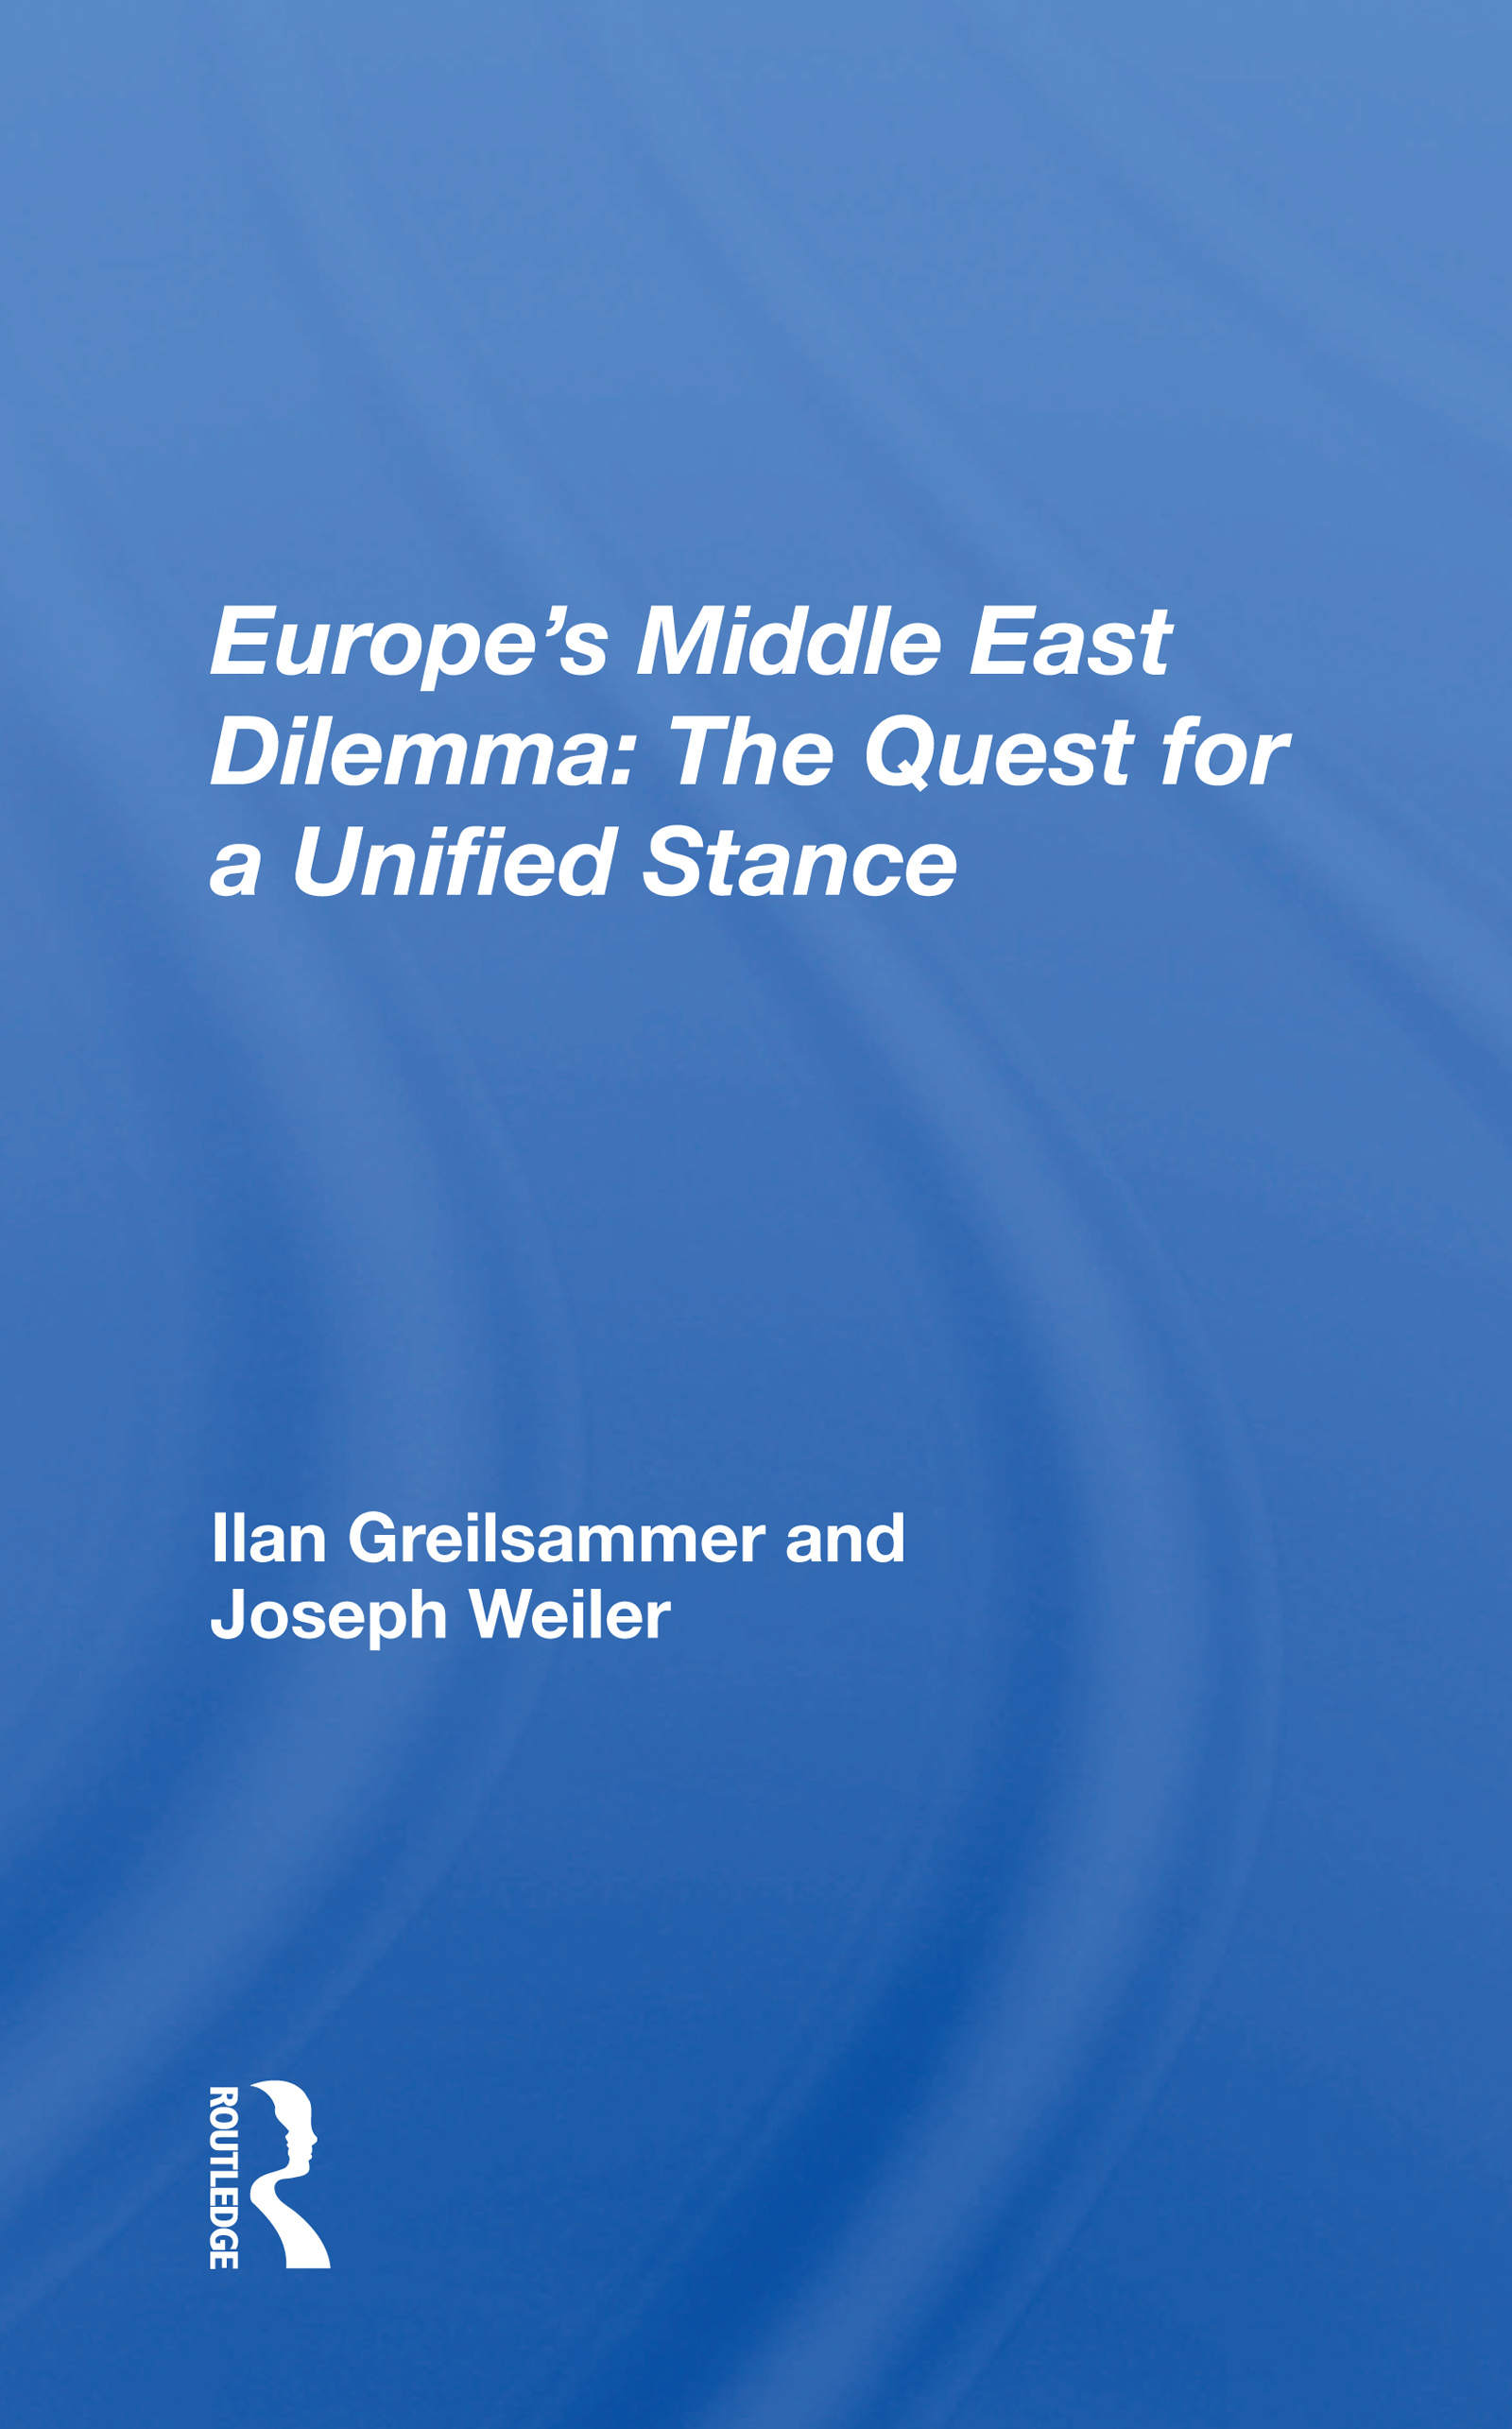 Europe's Middle East Dilemma: The Quest for a Unified Stance